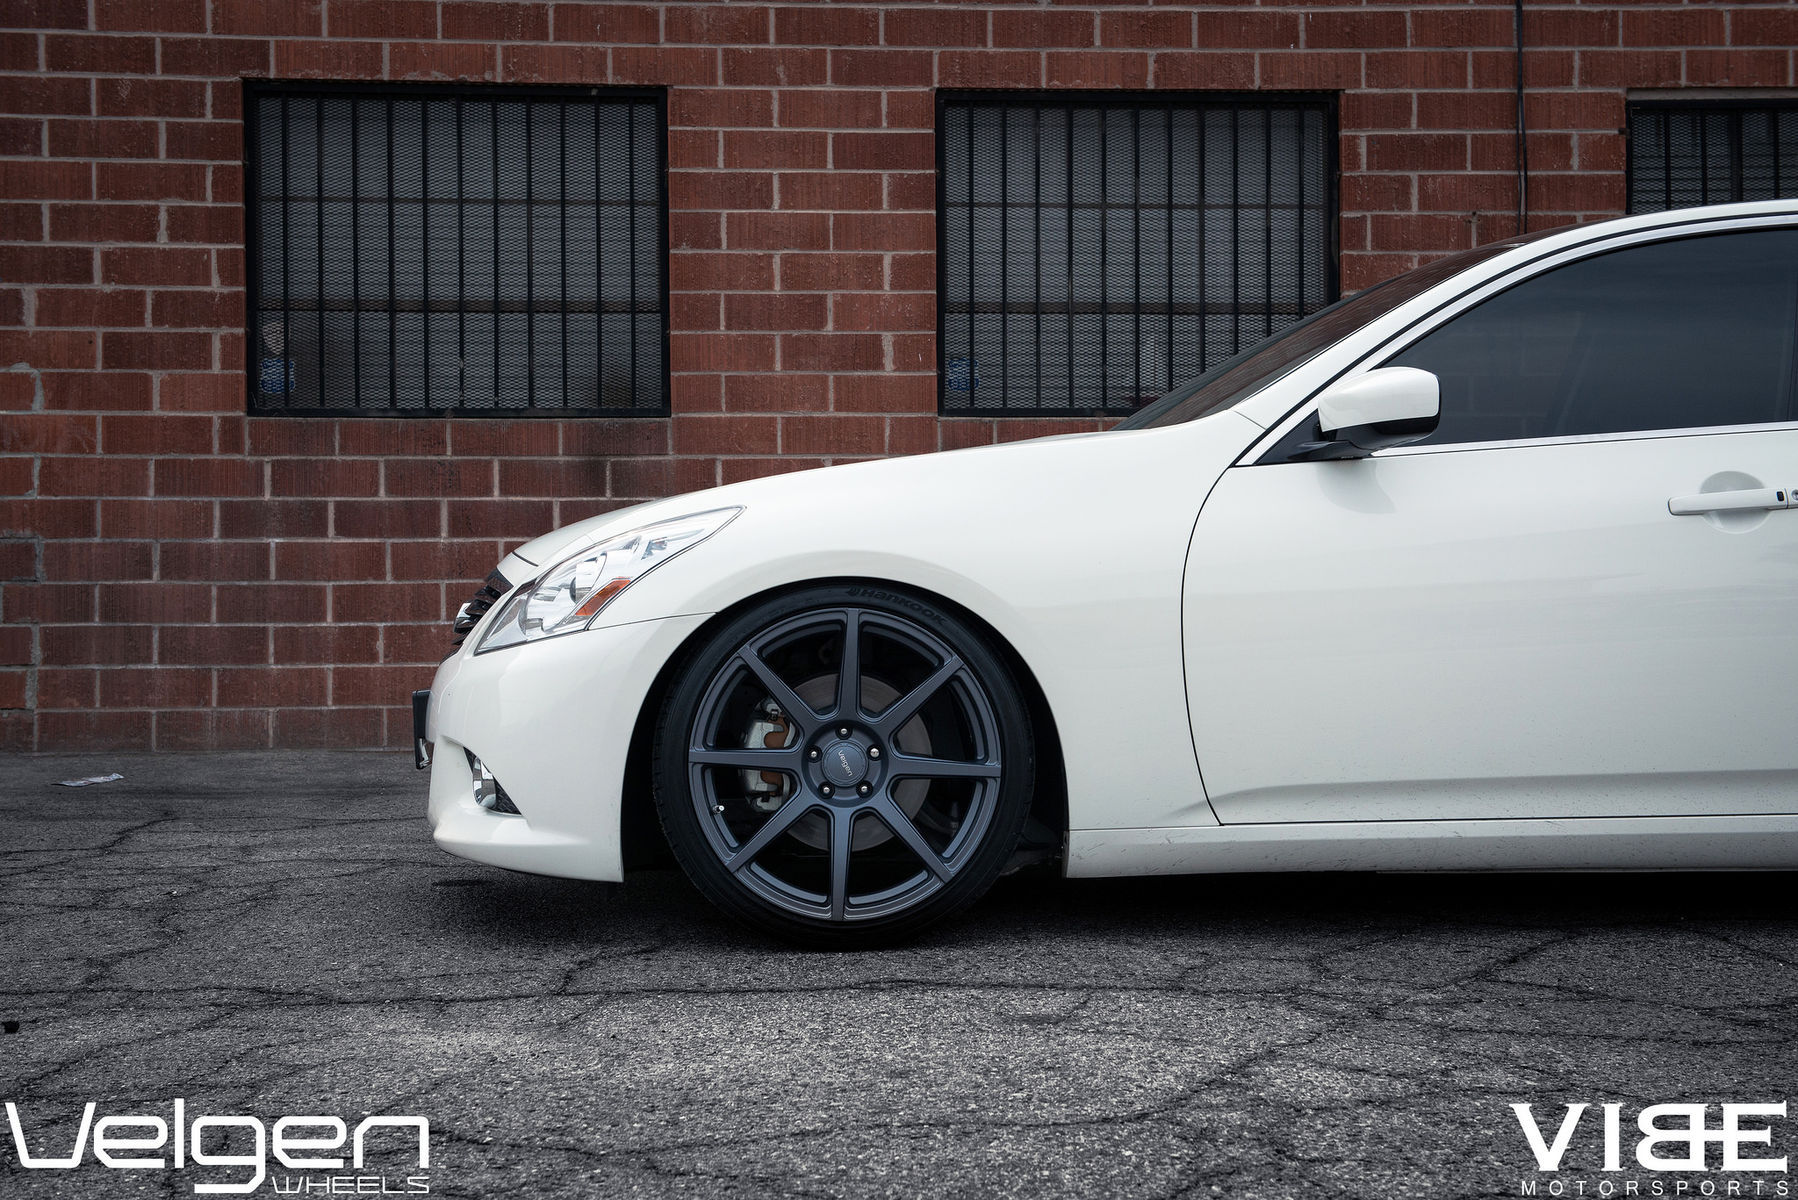 2009 Infiniti G37 Sedan | Infiniti G37 on Velgen VMB8 Wheels - Front Left Wheel